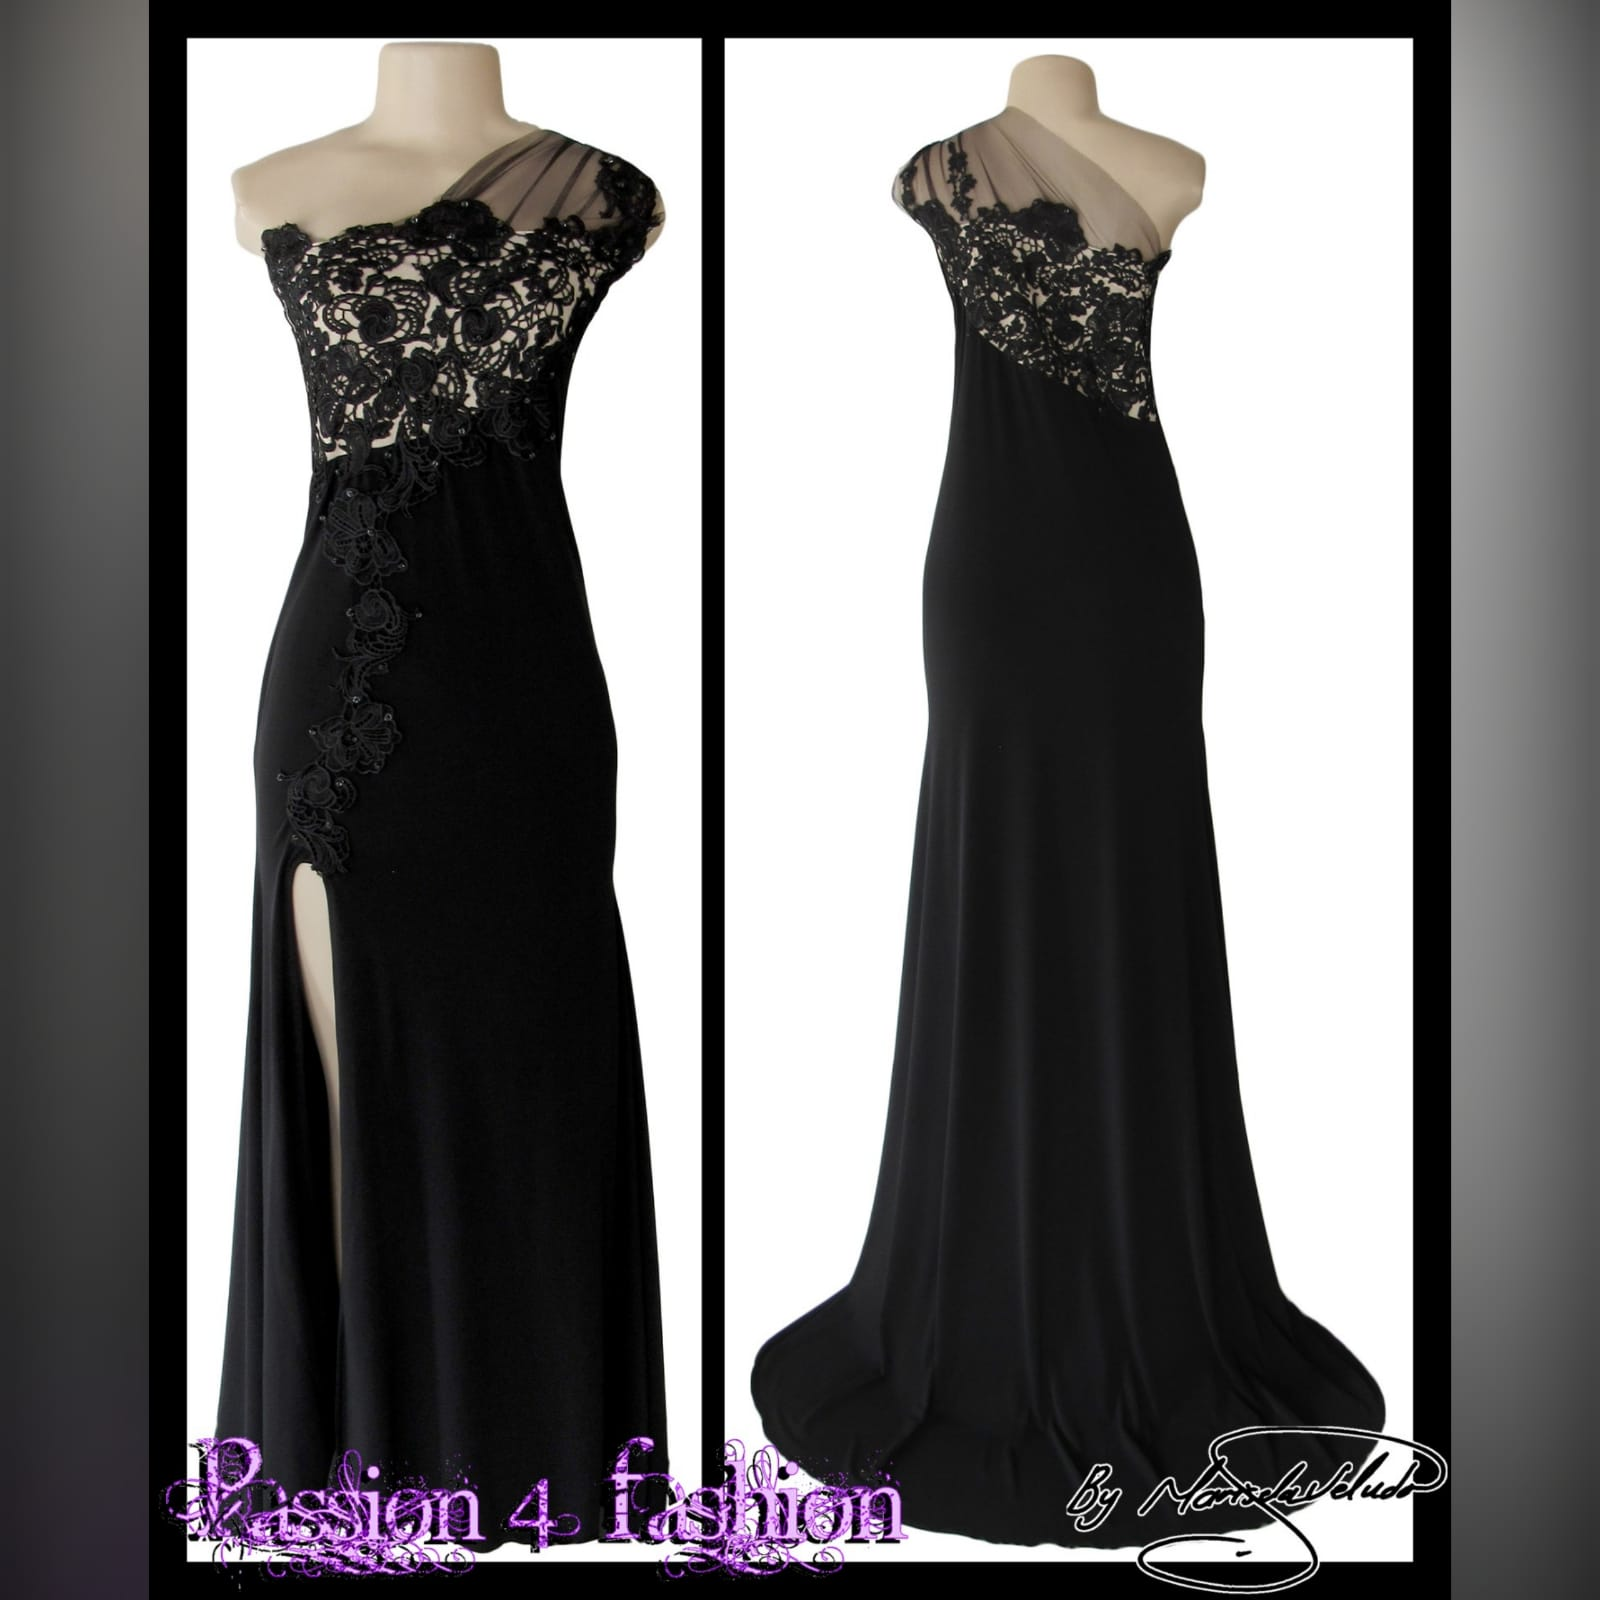 Long black evening dress with lace 3 single shoulder, lace bodice long black evening dress. With a slit and a train